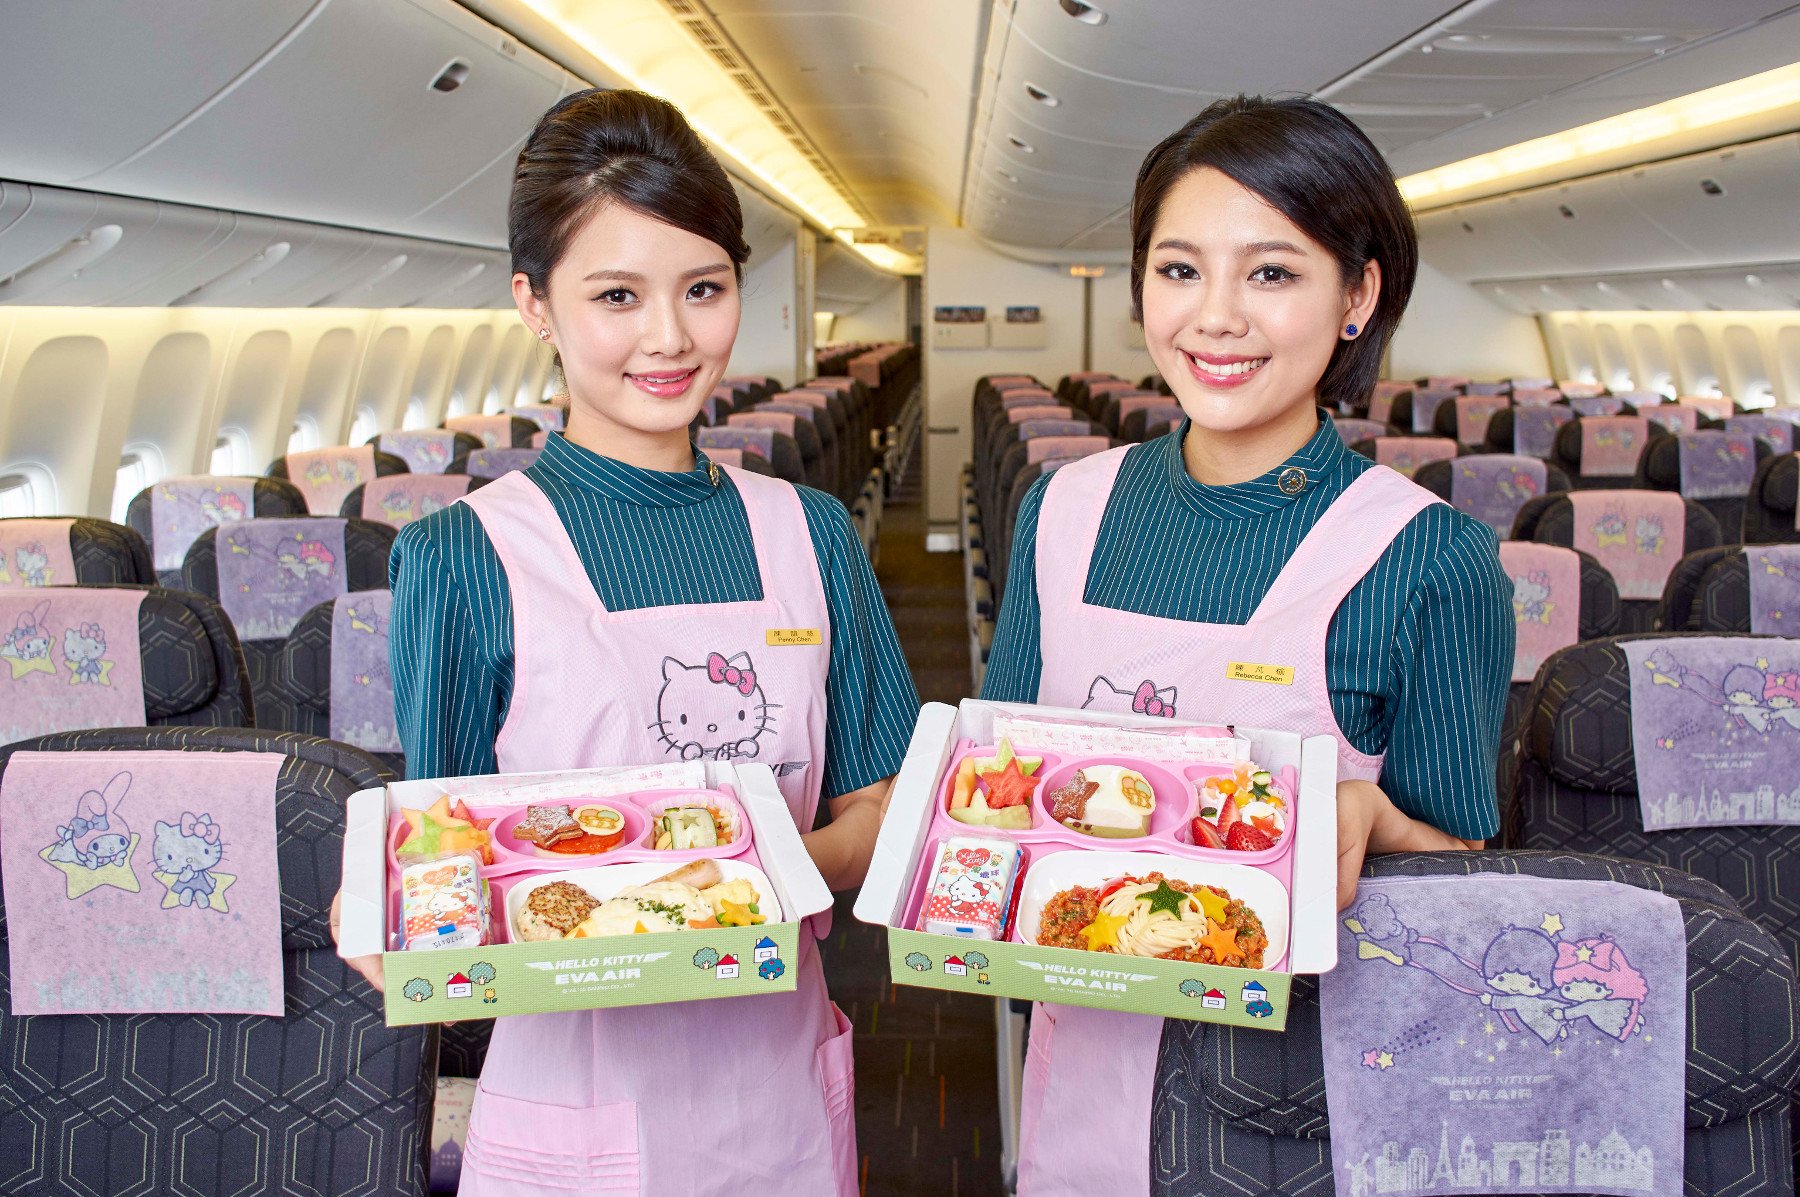 Eva Airline crew don Hello Kitty uniforms.